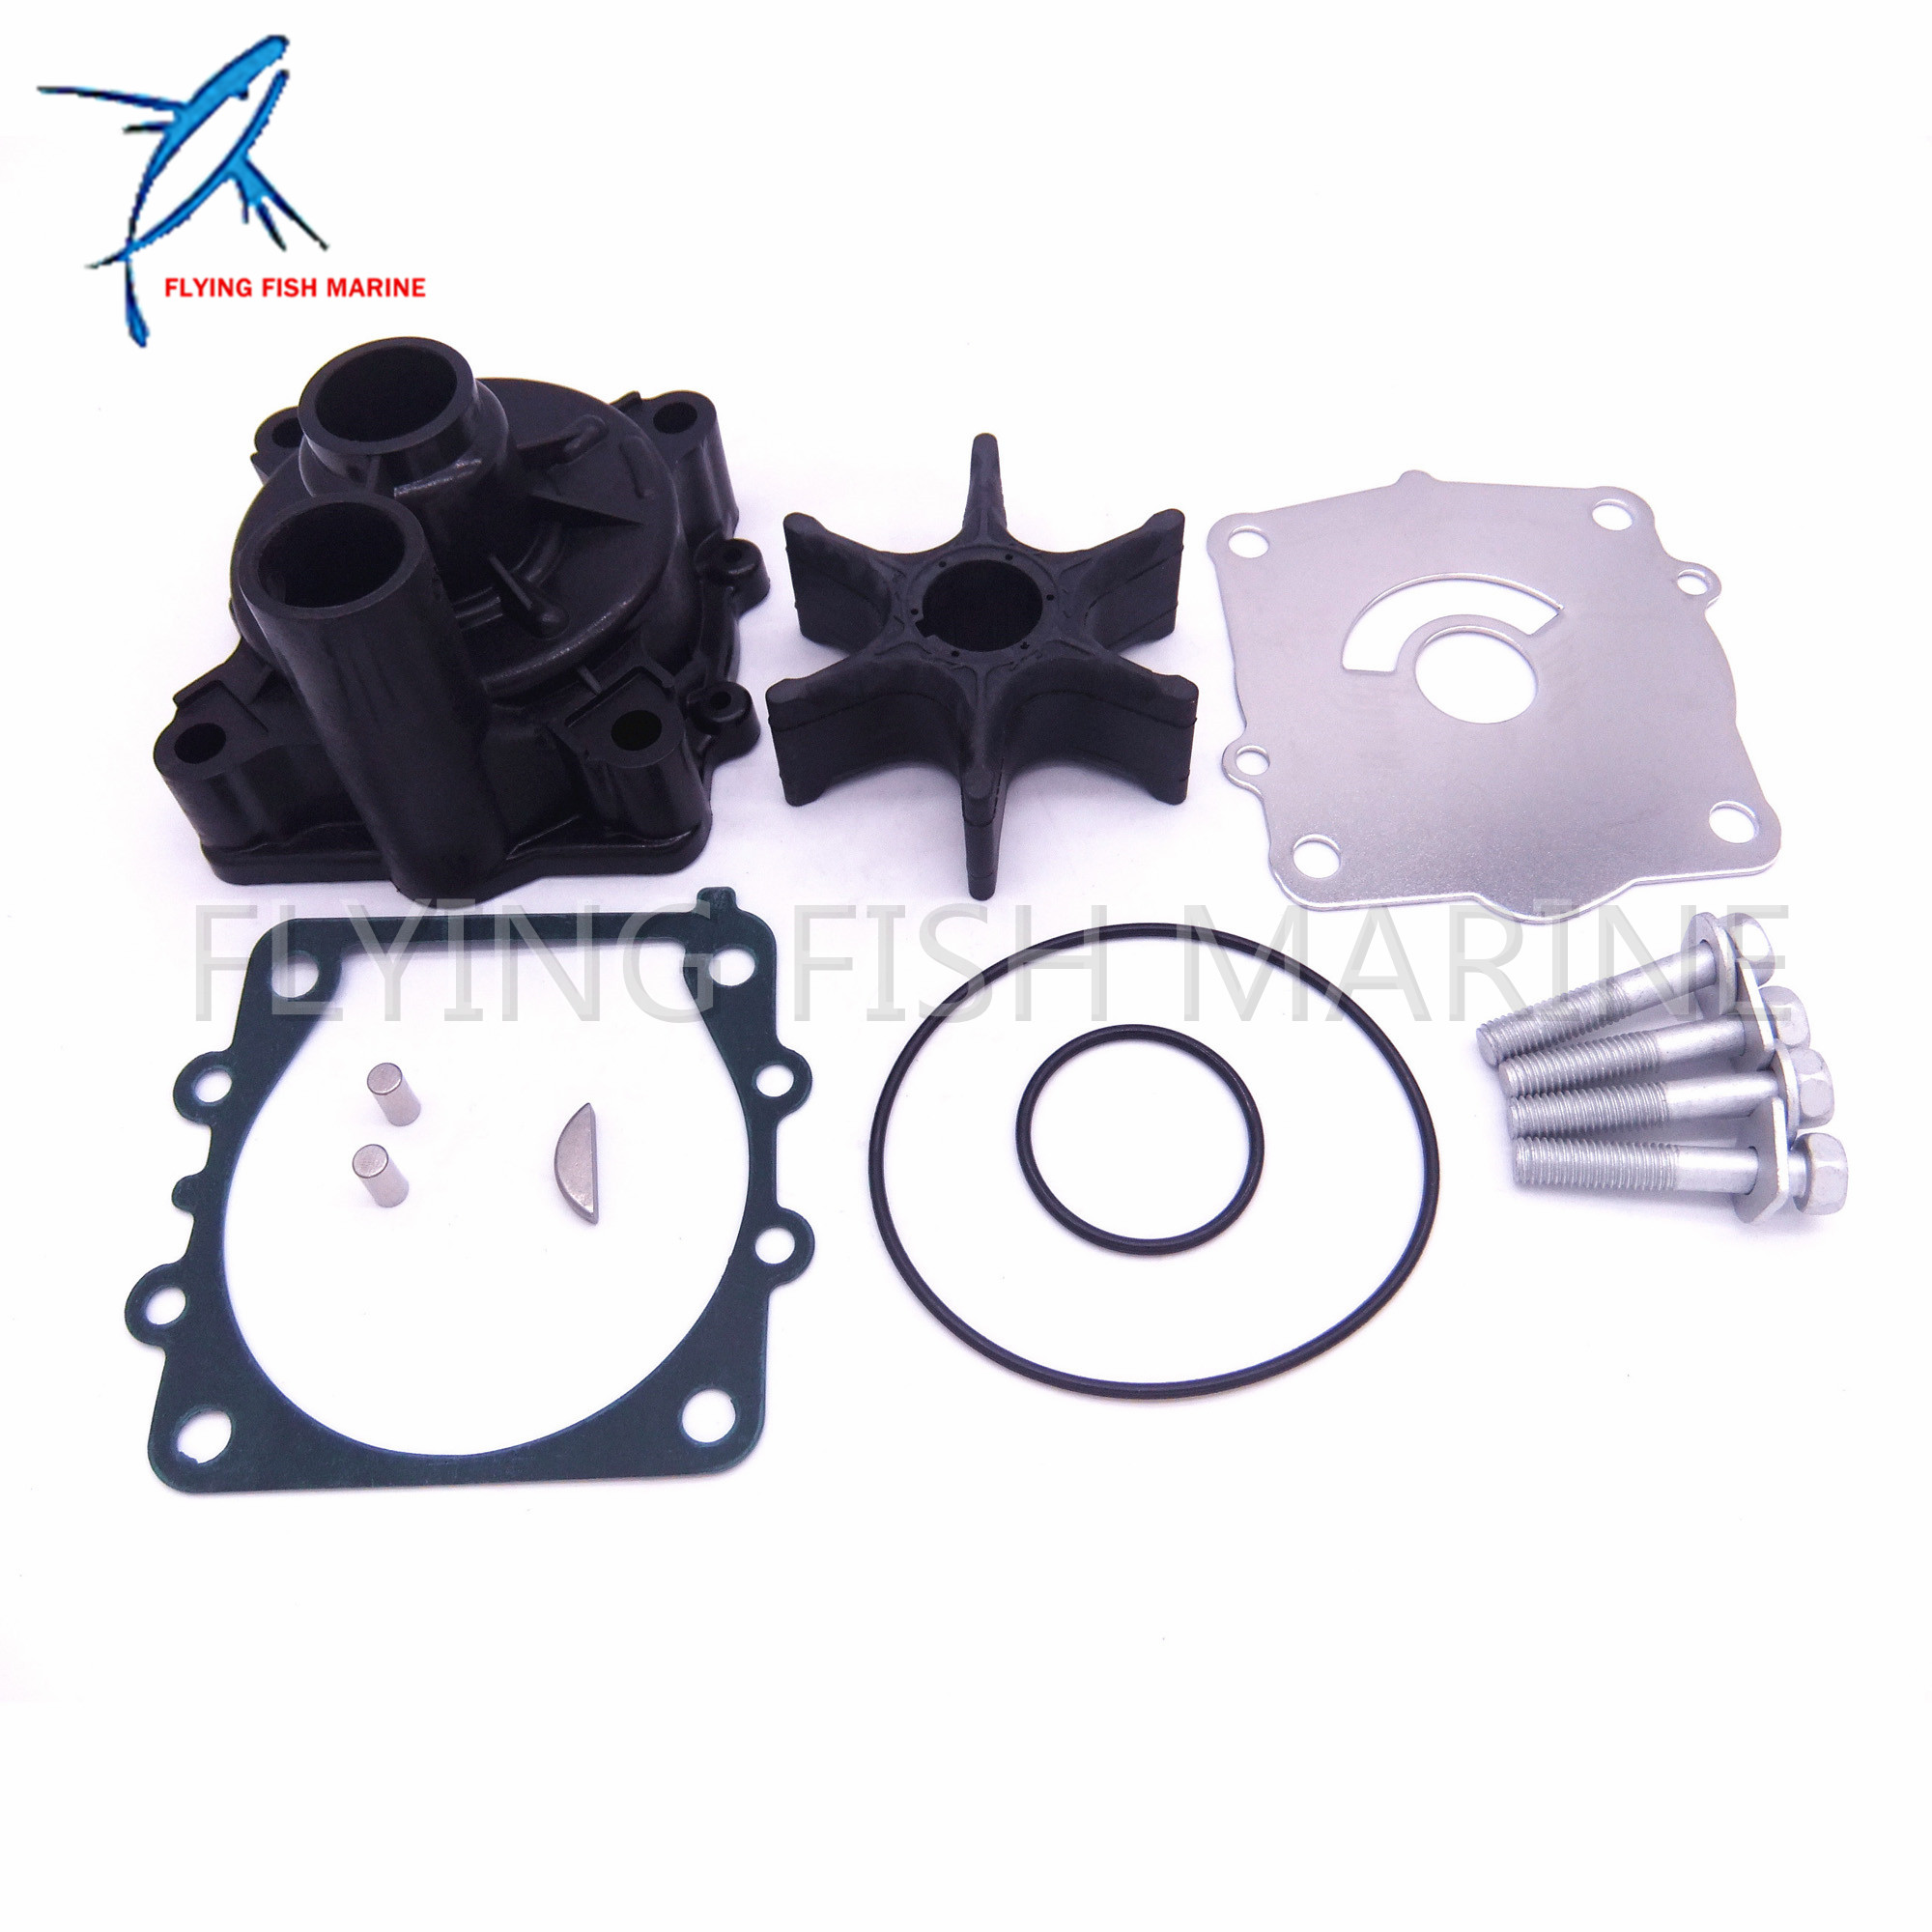 68V W0078 68V W0078 00 Water Pump Kit For Yamaha 115HP F115 Boat Outboard Motors